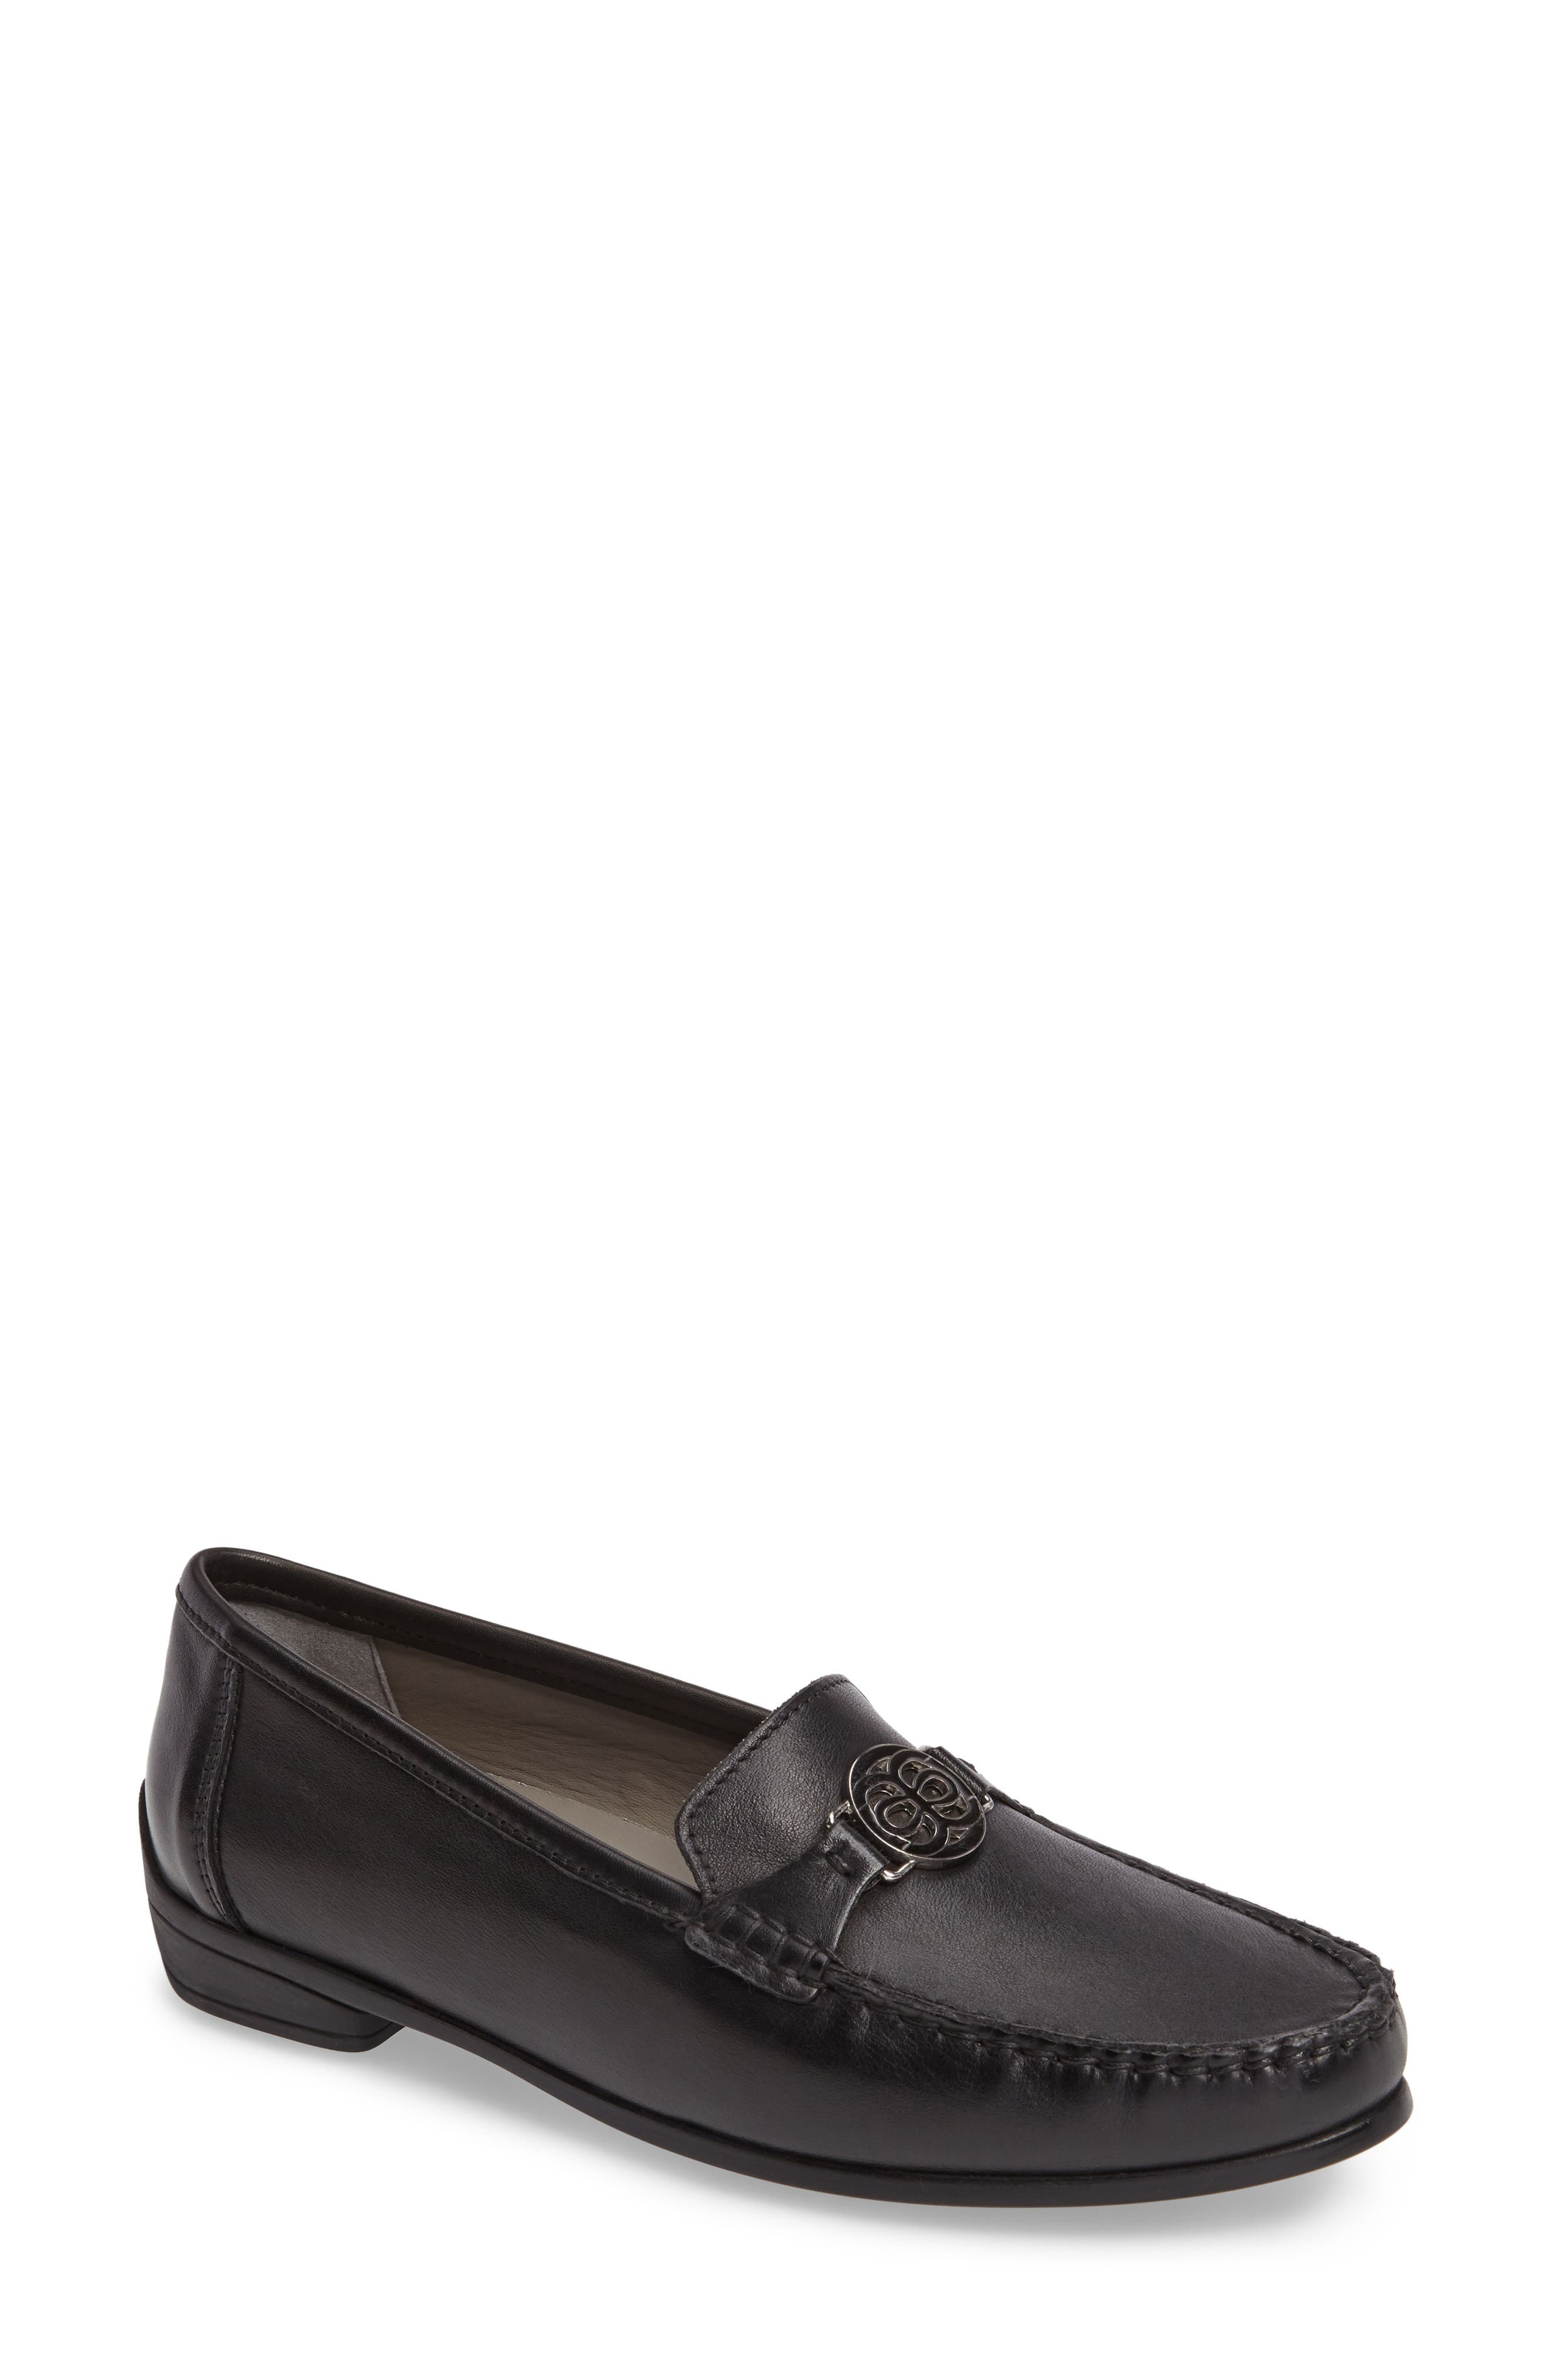 Main Image - ara Blanche Loafer (Women)